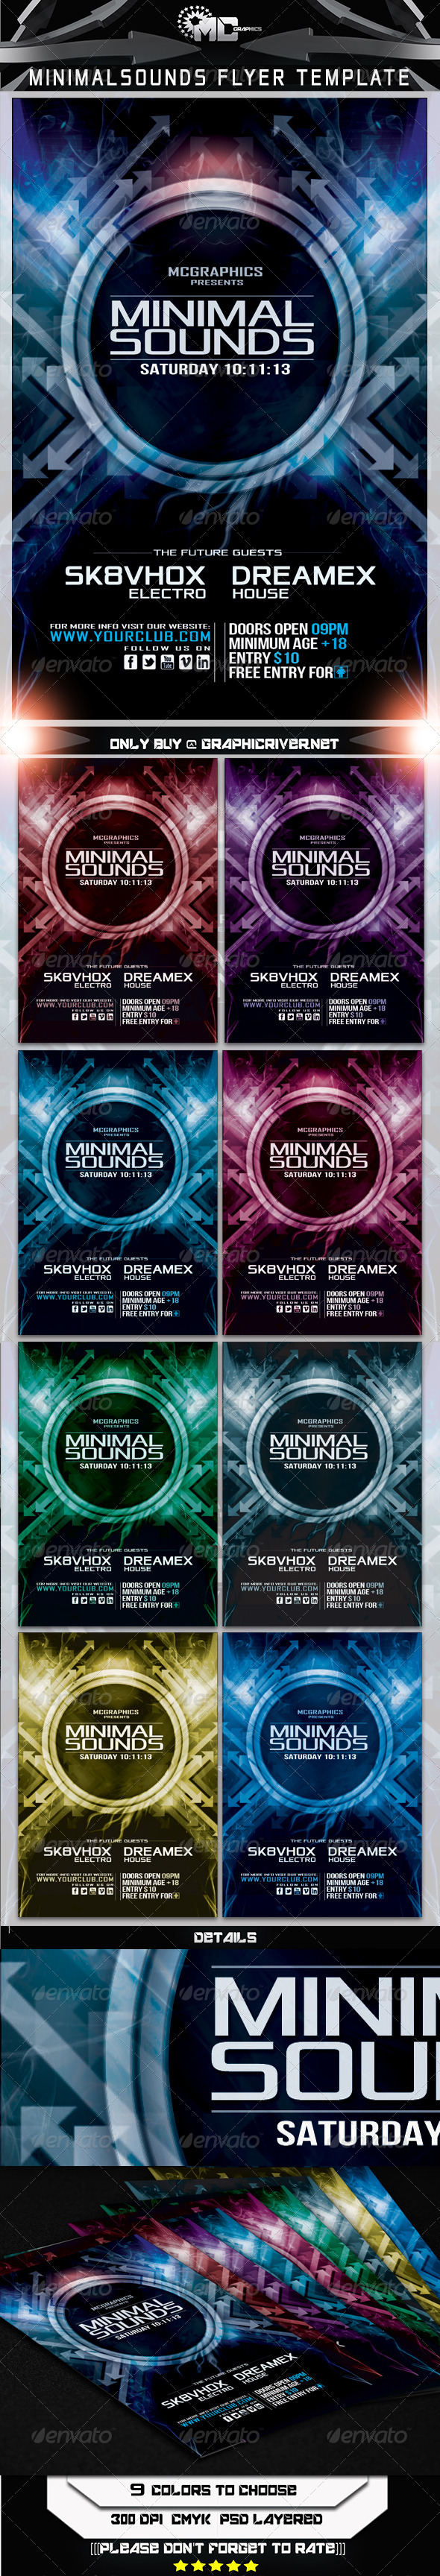 Minimal Sounds Flyer Template - Print Templates